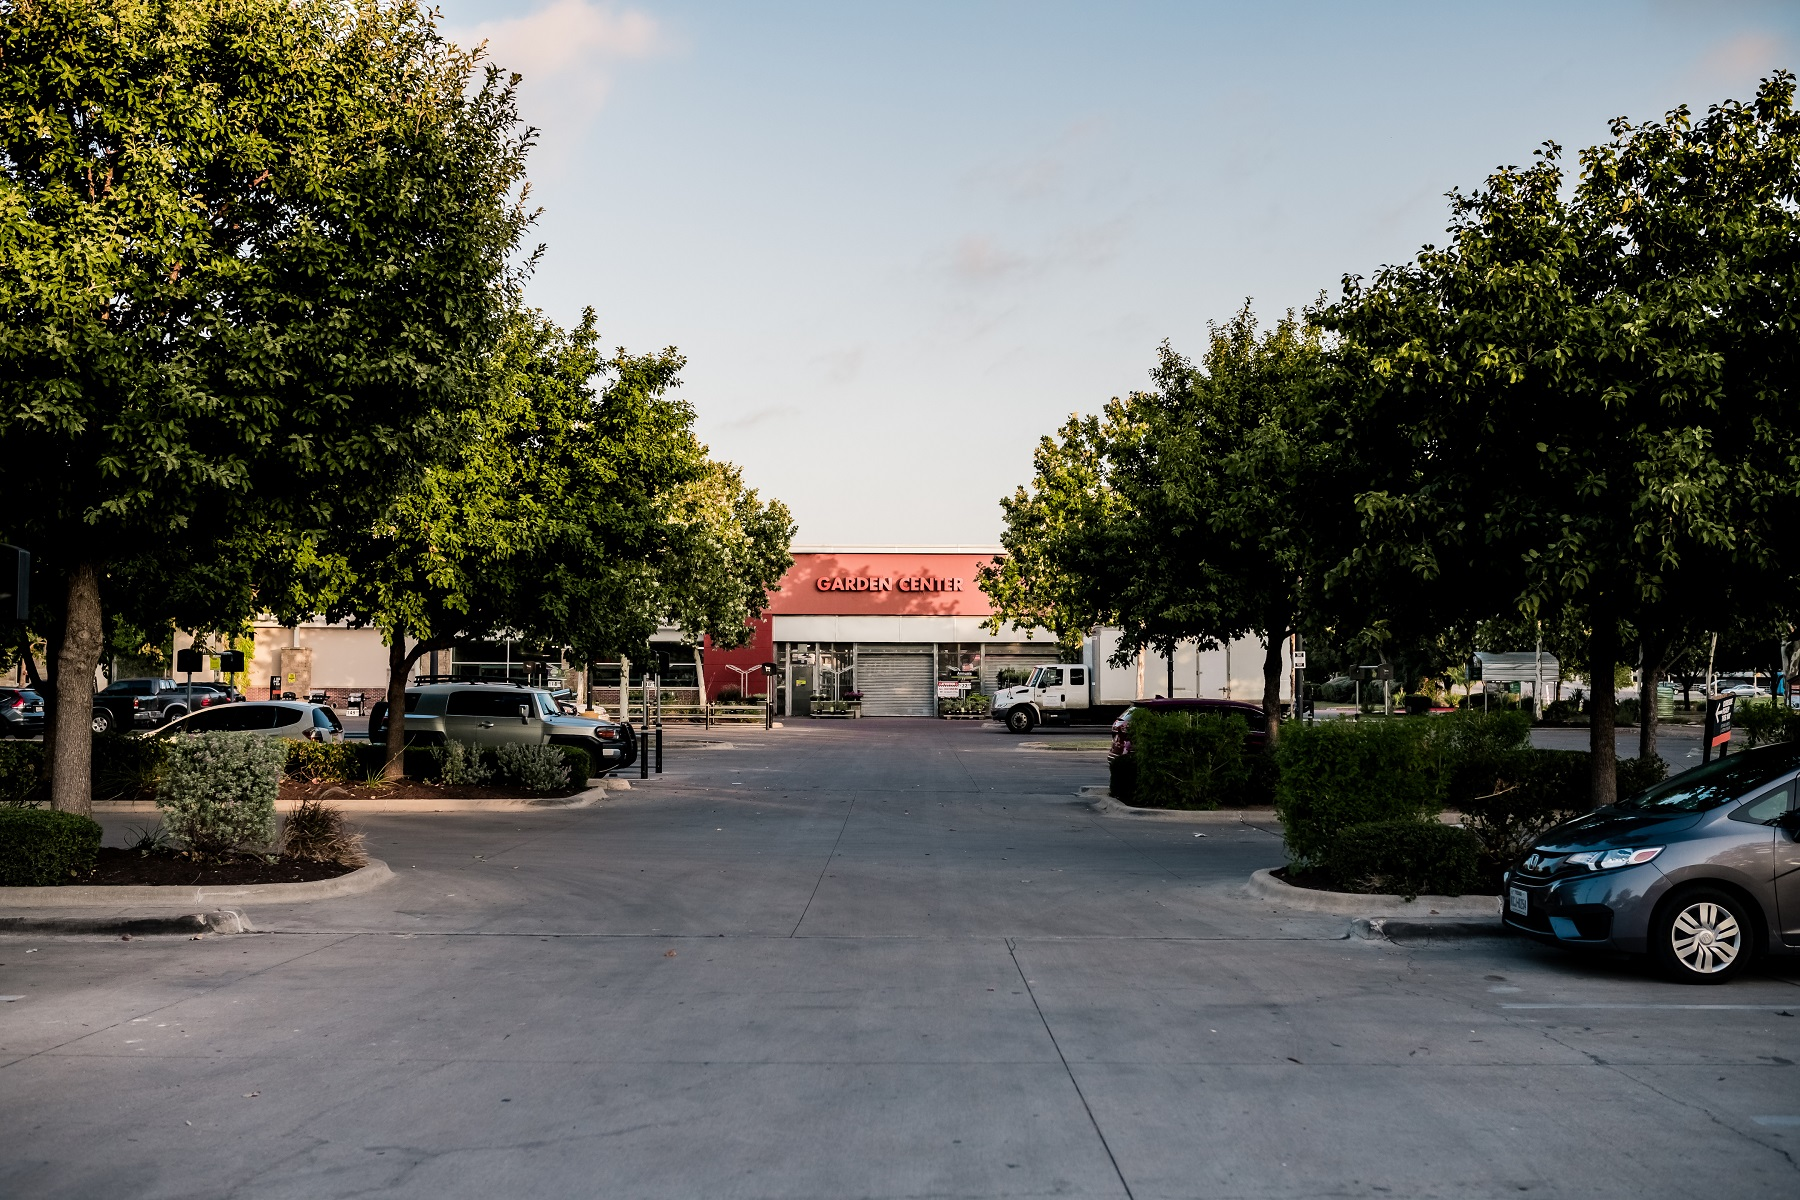 Parking lot trees